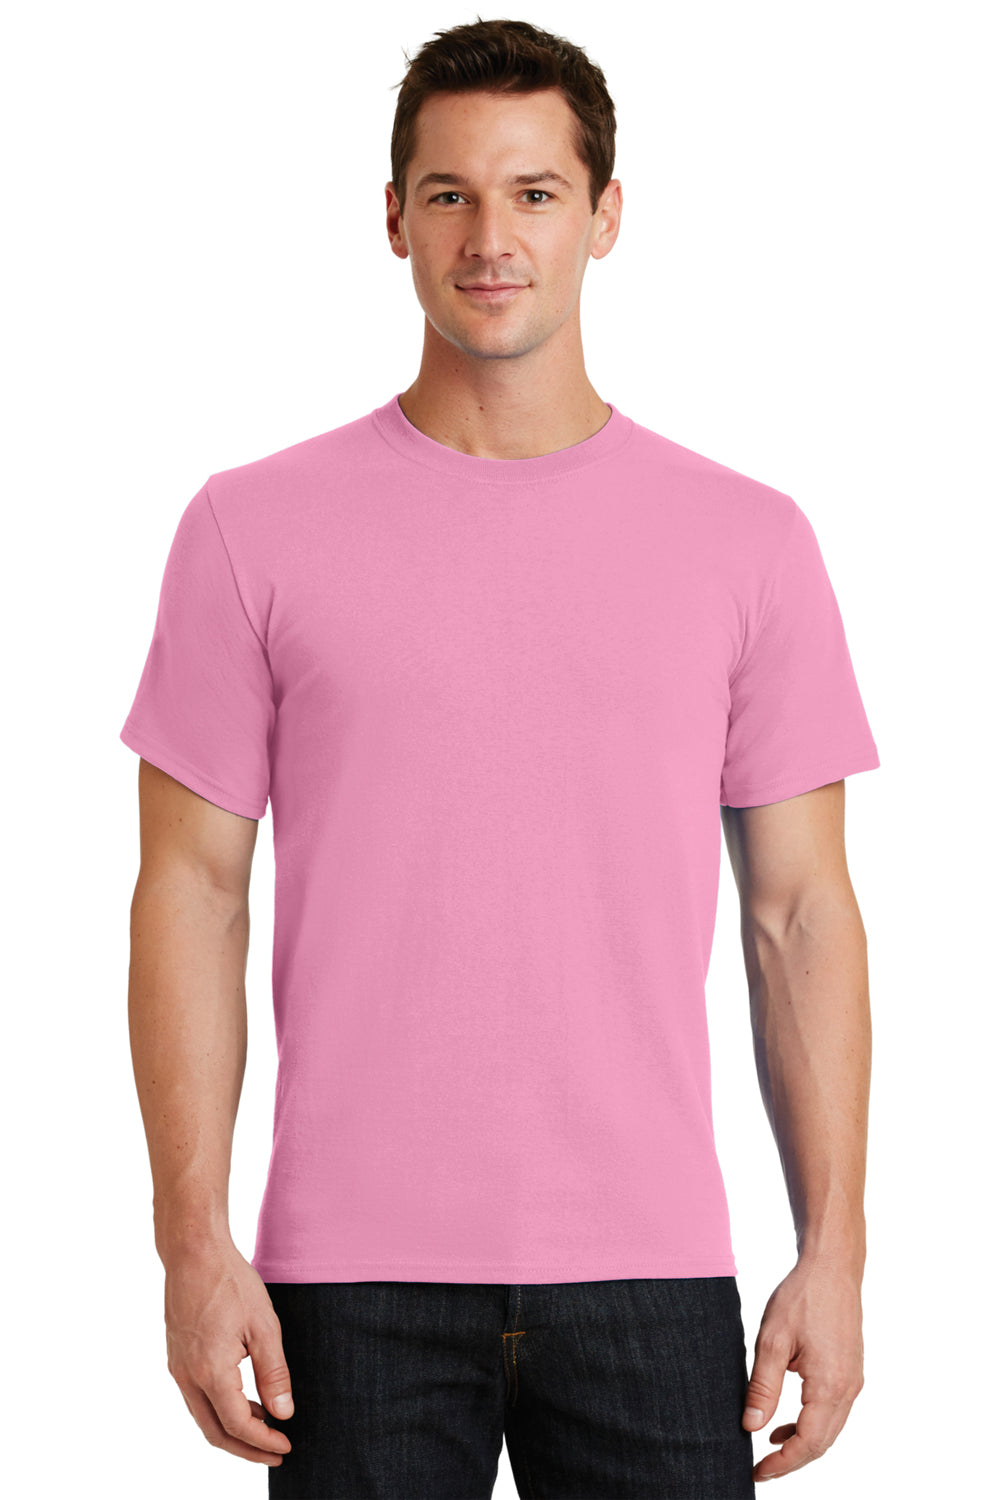 Port & Company PC61 Mens Essential Short Sleeve Crewneck T-Shirt Candy Pink Front